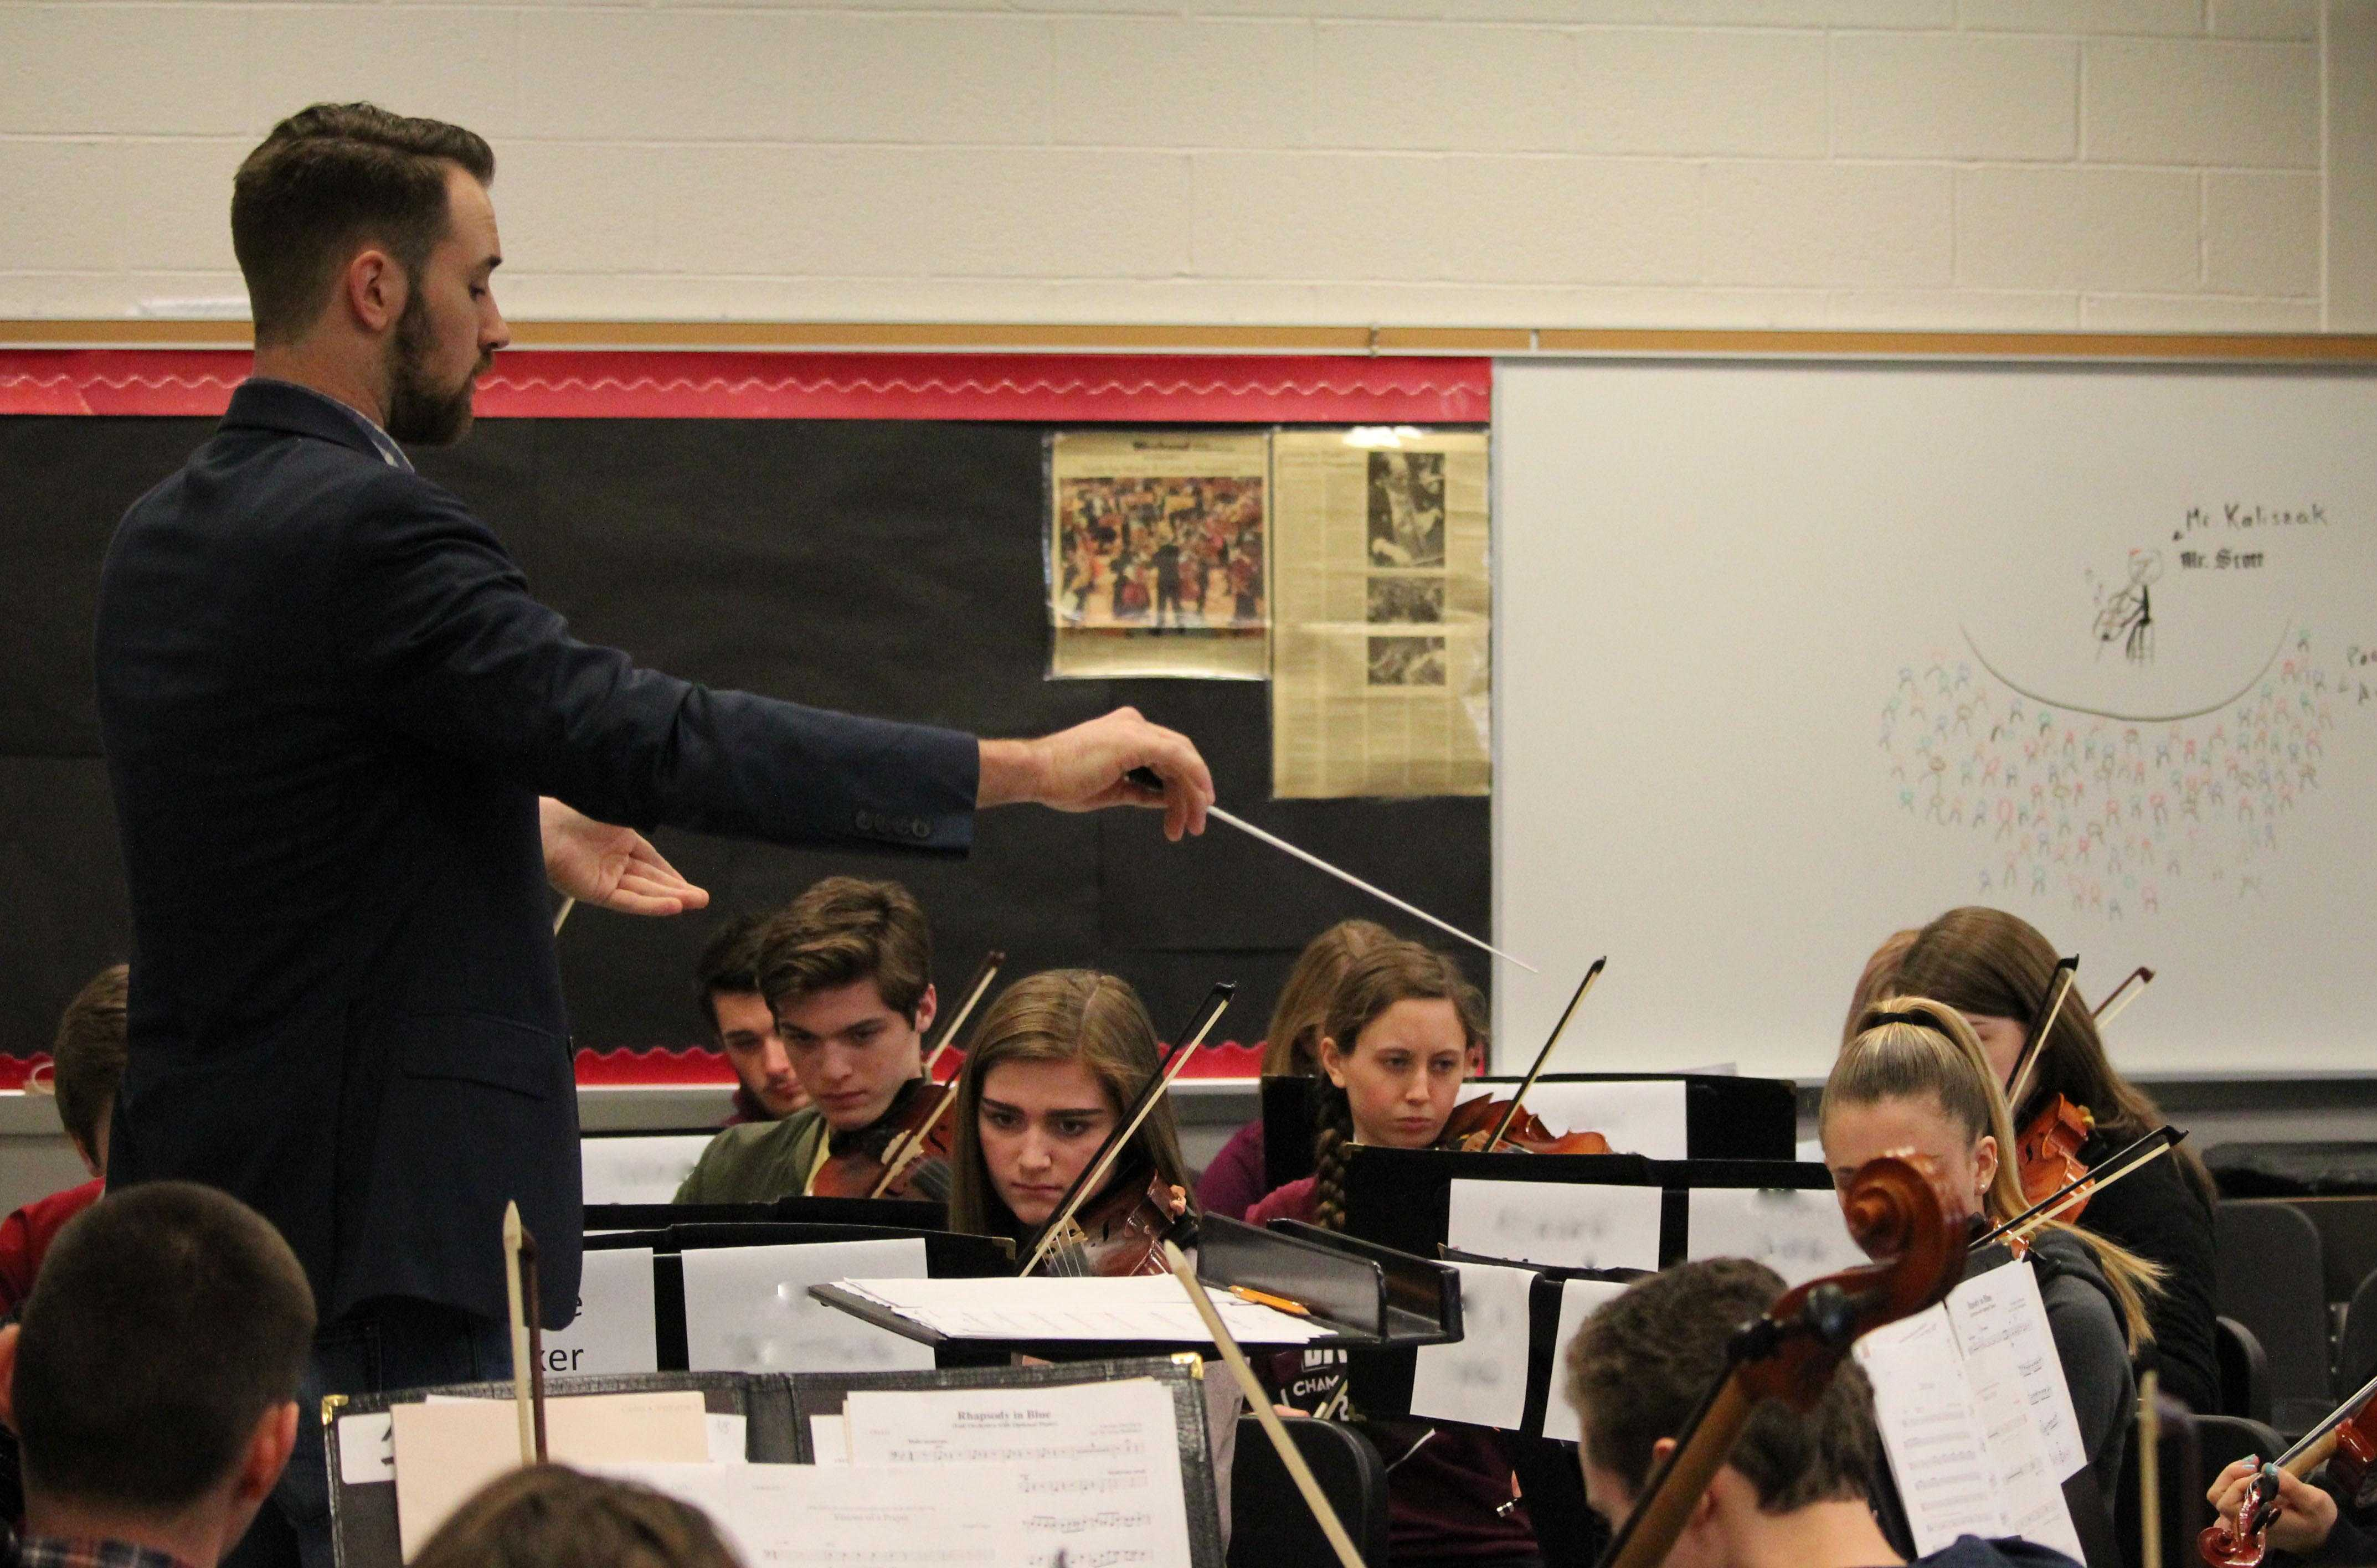 Susquehannock High School orchestra students rehearse for their chamber music concert under the direction of guest conductor Derek Cooper from the Manhattan School of Music.